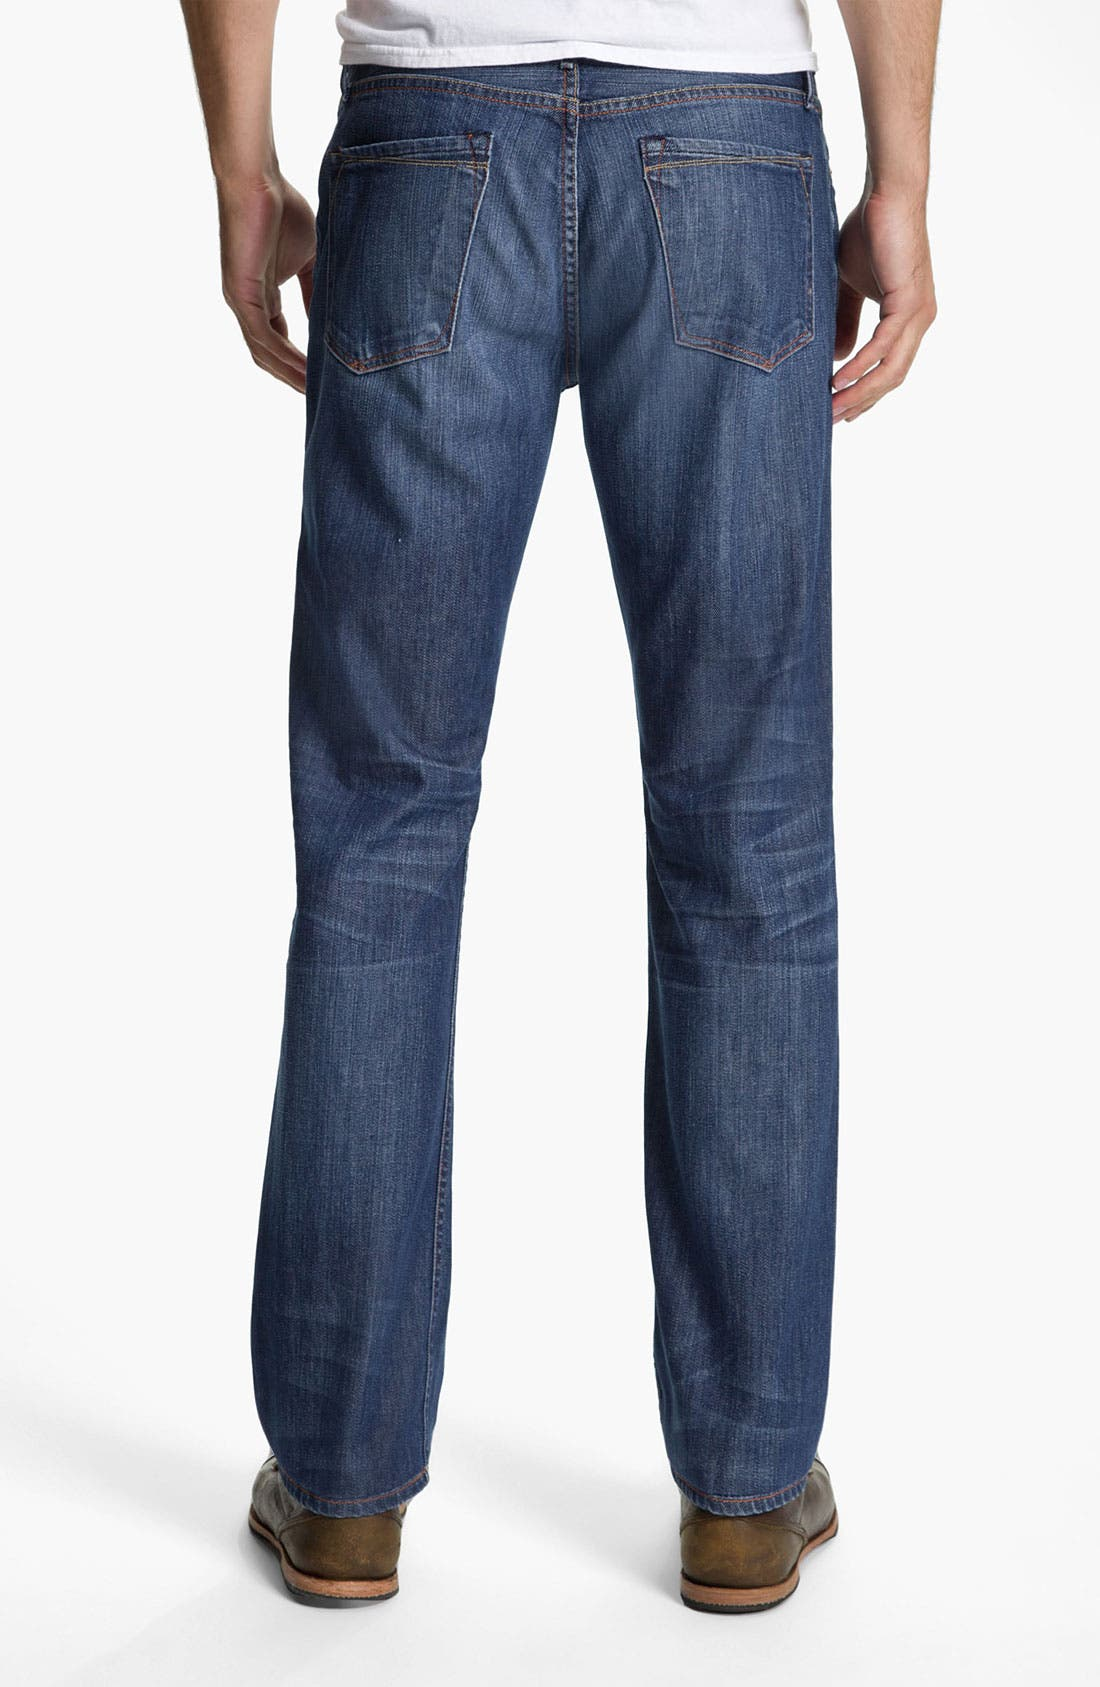 Alternate Image 2  - Earnest Sewn 'Dexter' Relaxed Leg Jeans (Burton)